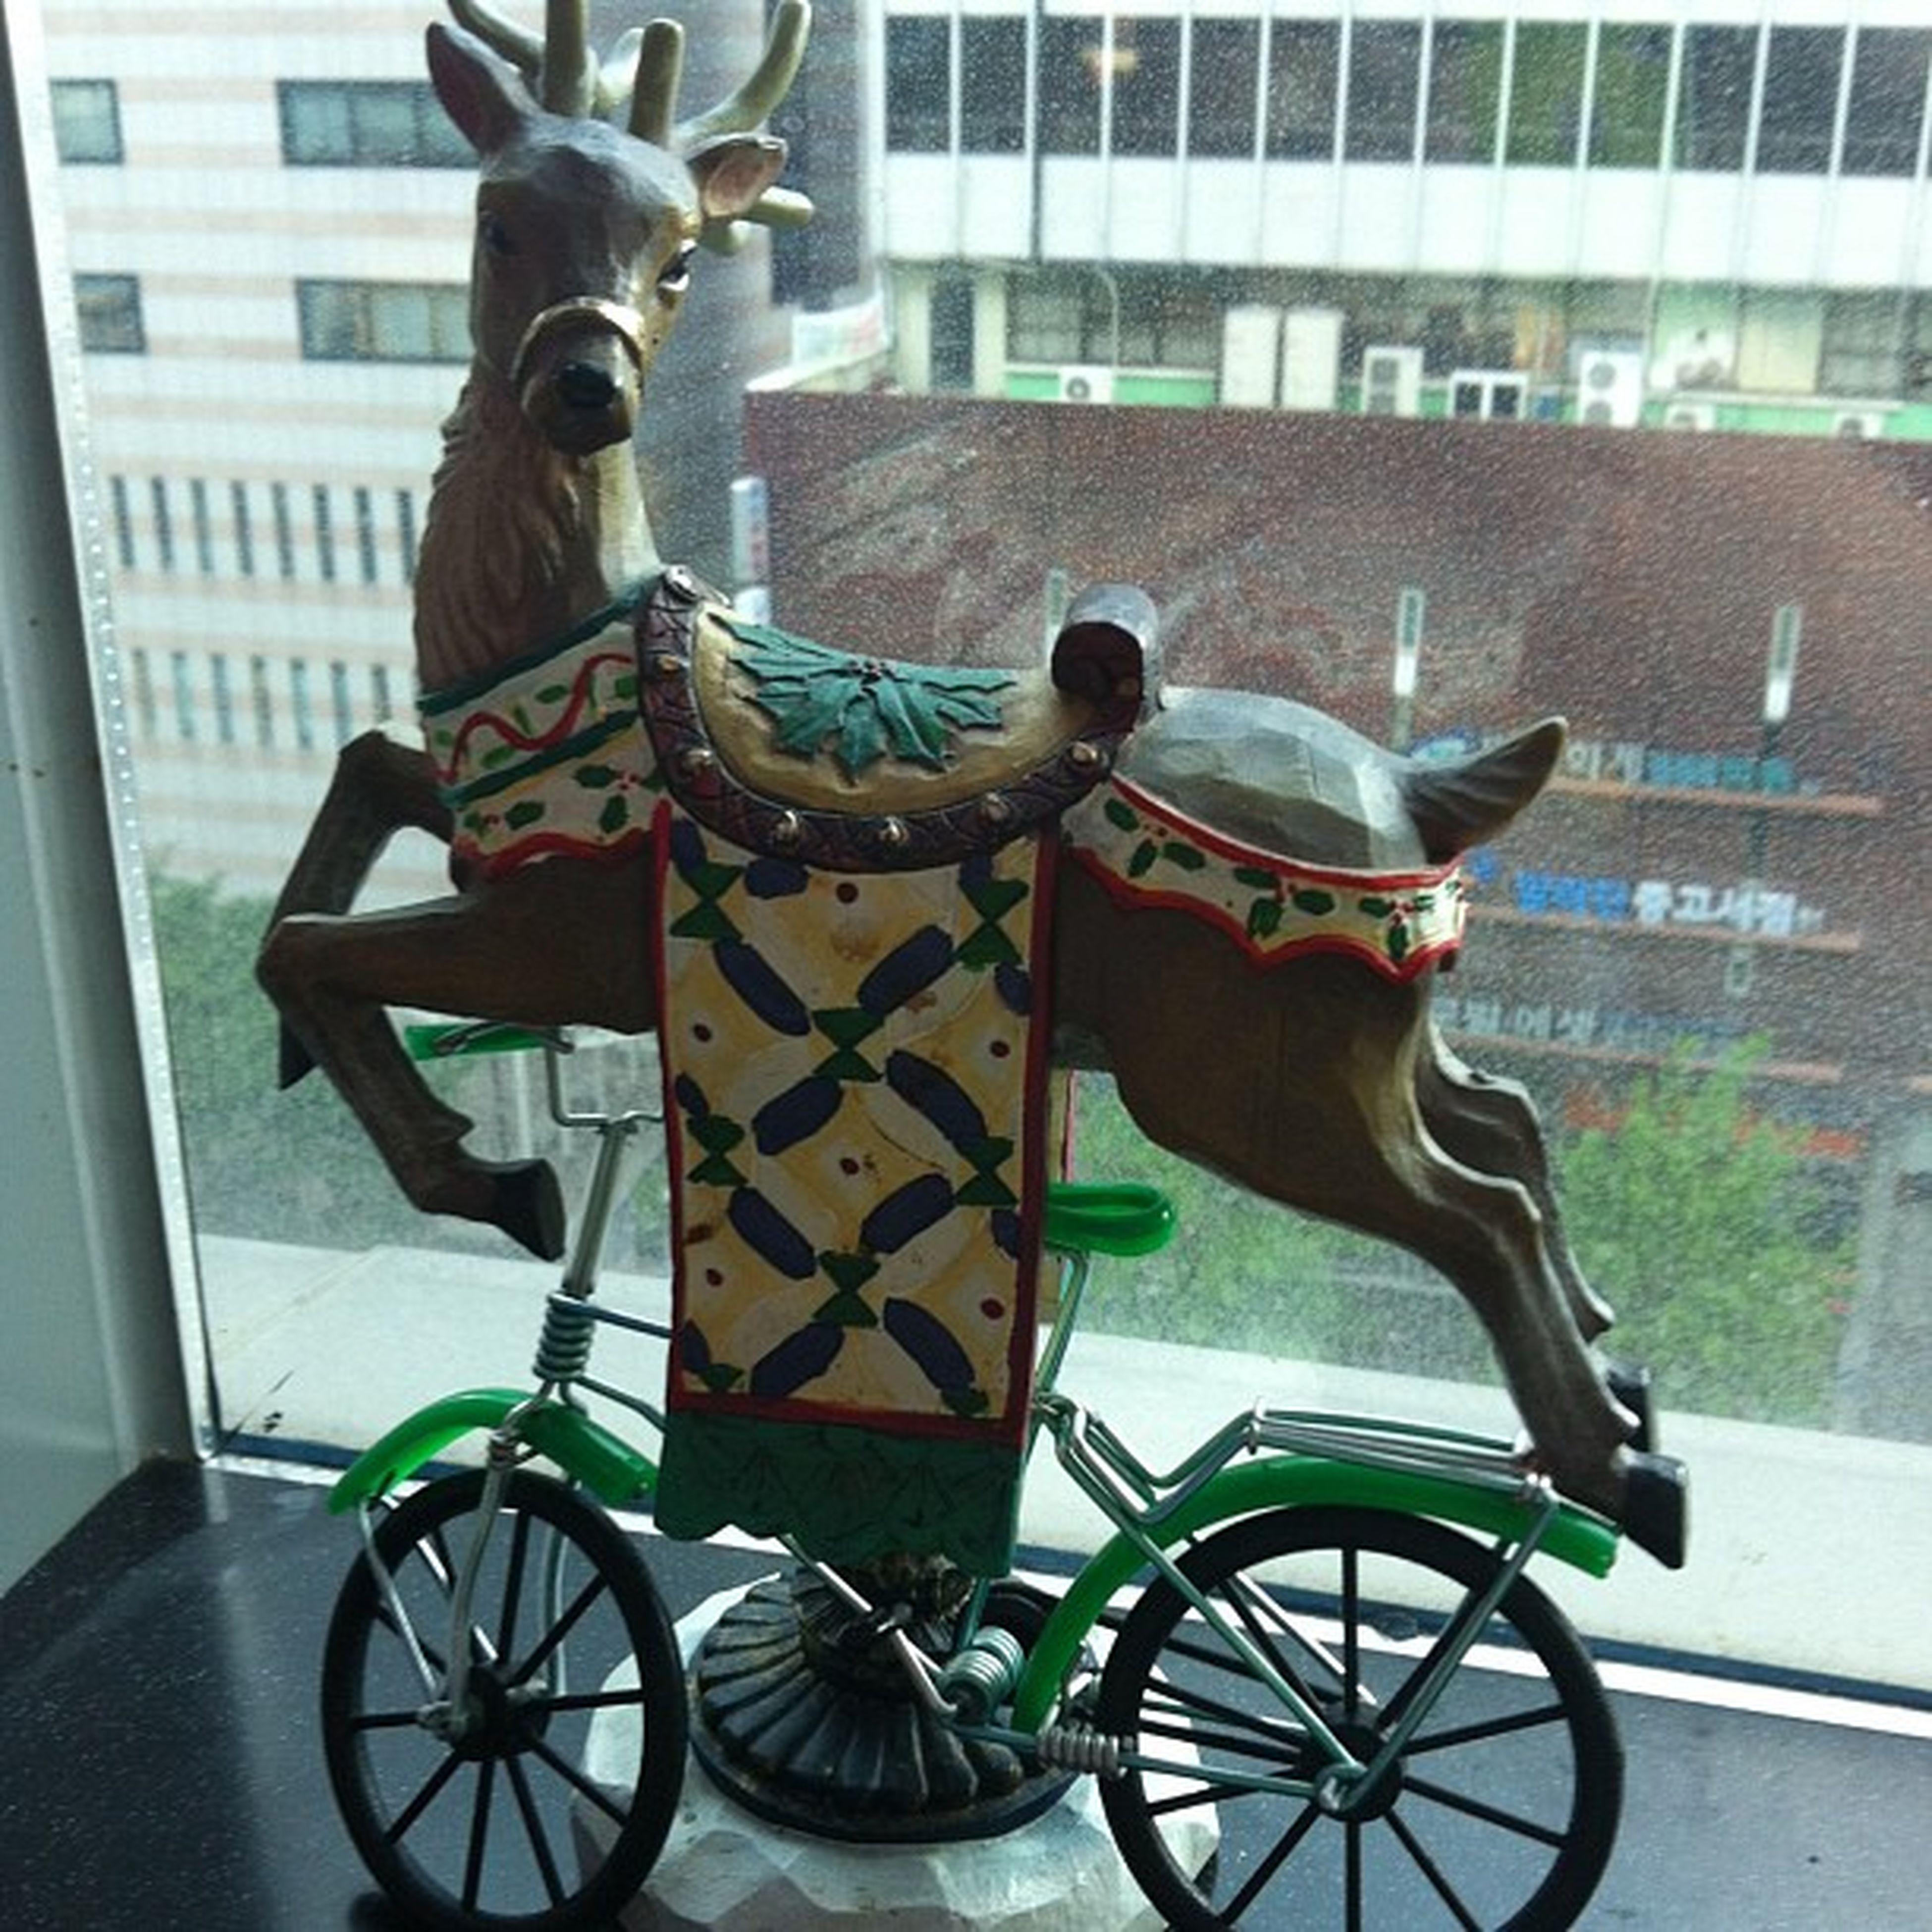 bicycle, building exterior, mode of transport, transportation, animal representation, architecture, land vehicle, built structure, art, art and craft, window, human representation, side view, day, animal themes, sculpture, outdoors, parking, creativity, city